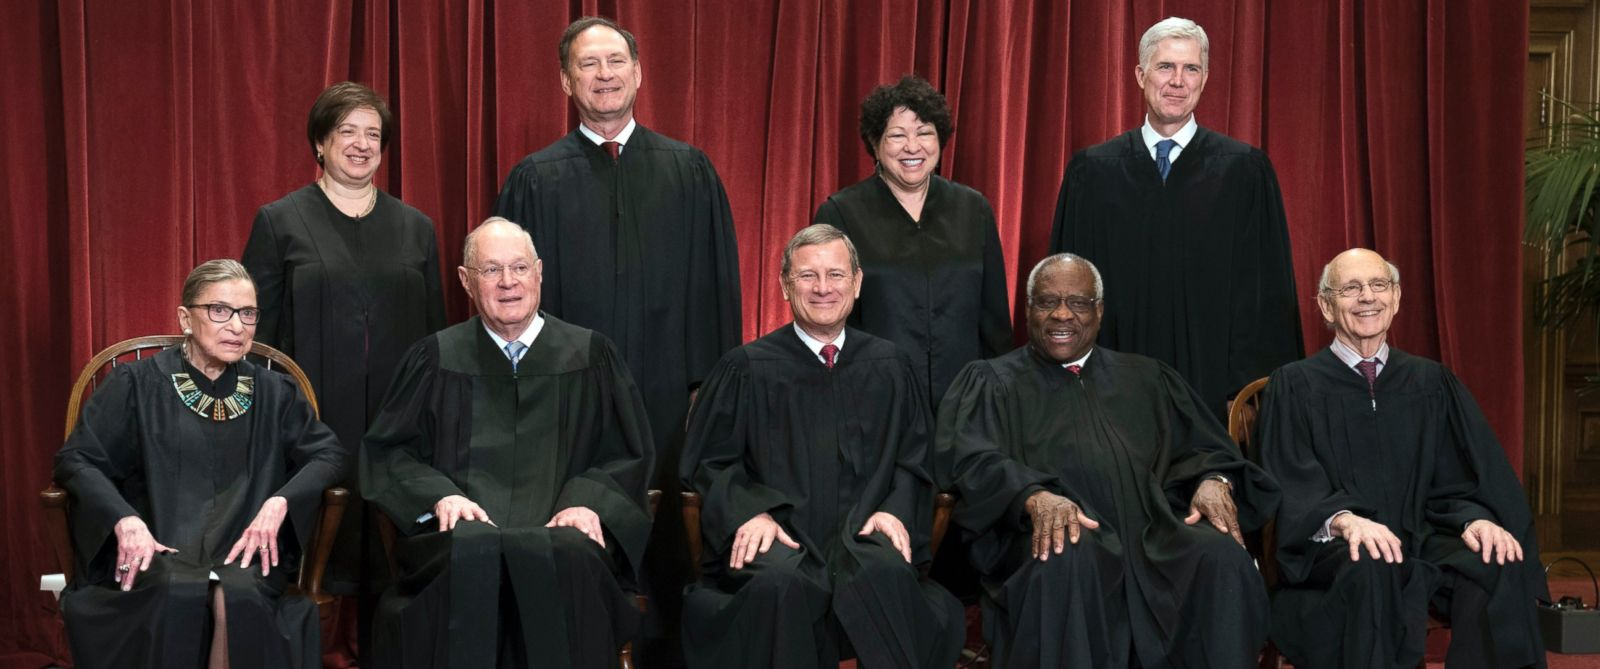 Meet the 9 sitting Supreme Court justices - ABC News